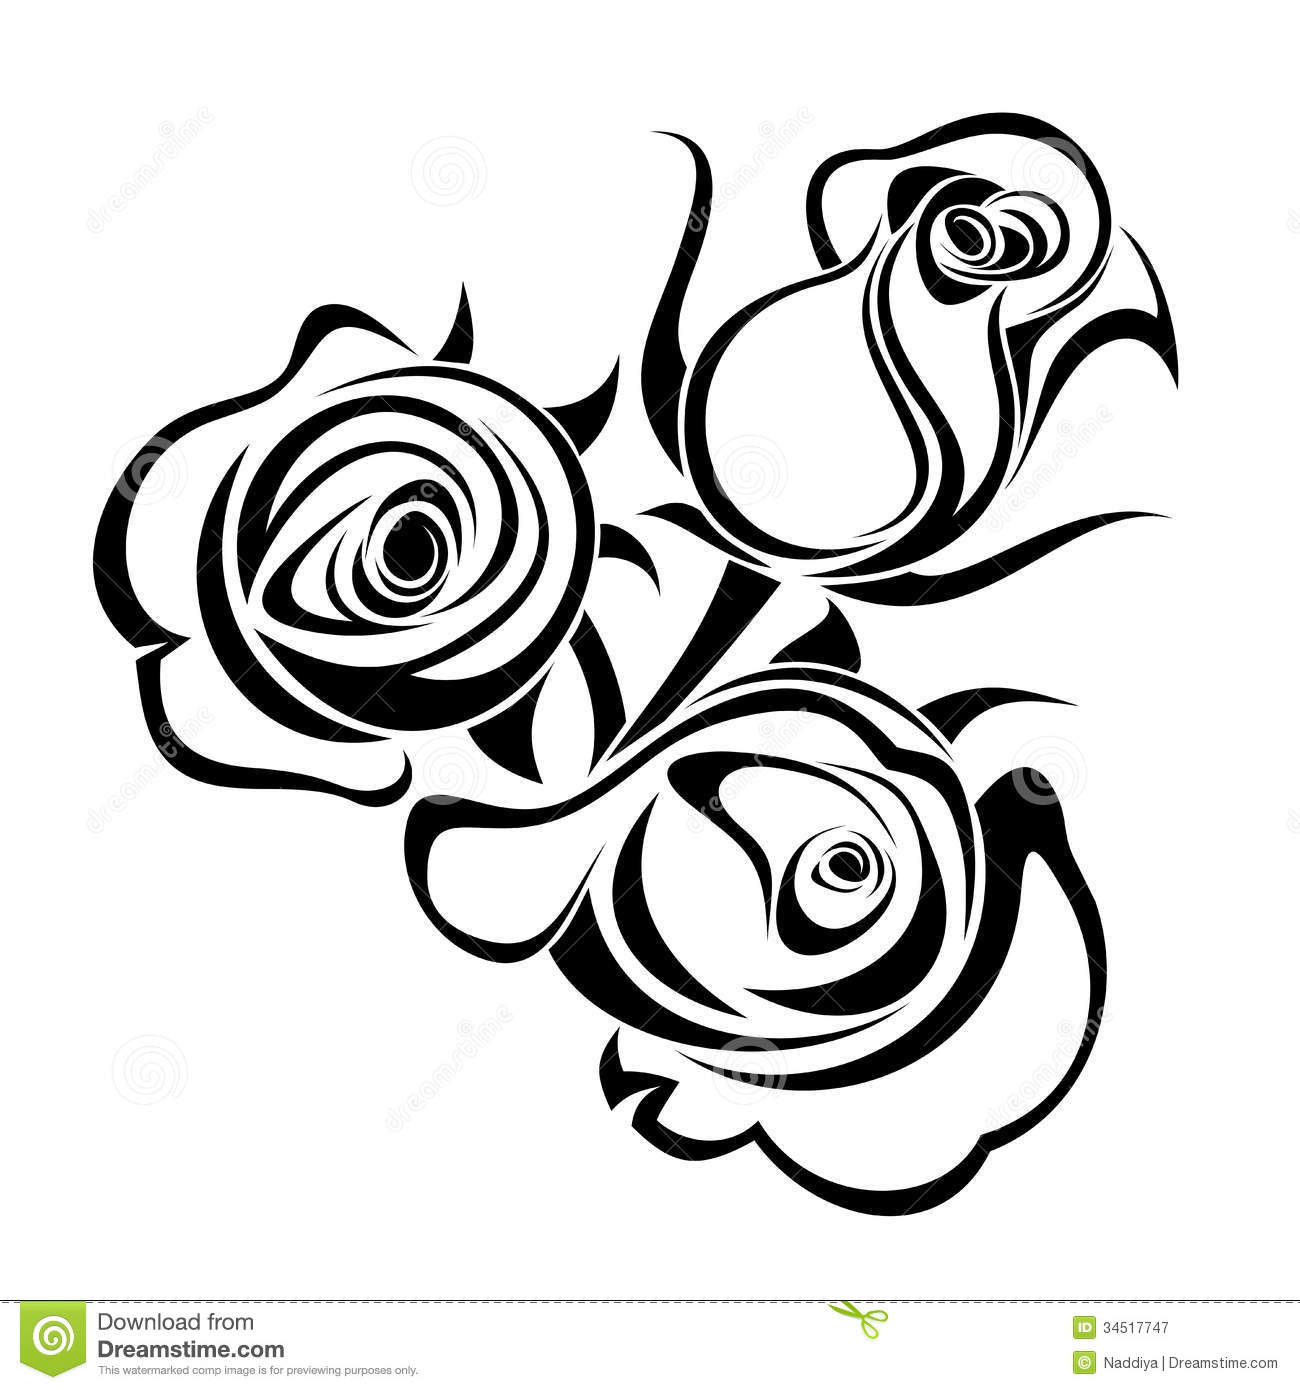 rose clip art black and white clipart panda free clipart images rh clipartpanda com single rose black and white clipart rose bouquet black and white clipart